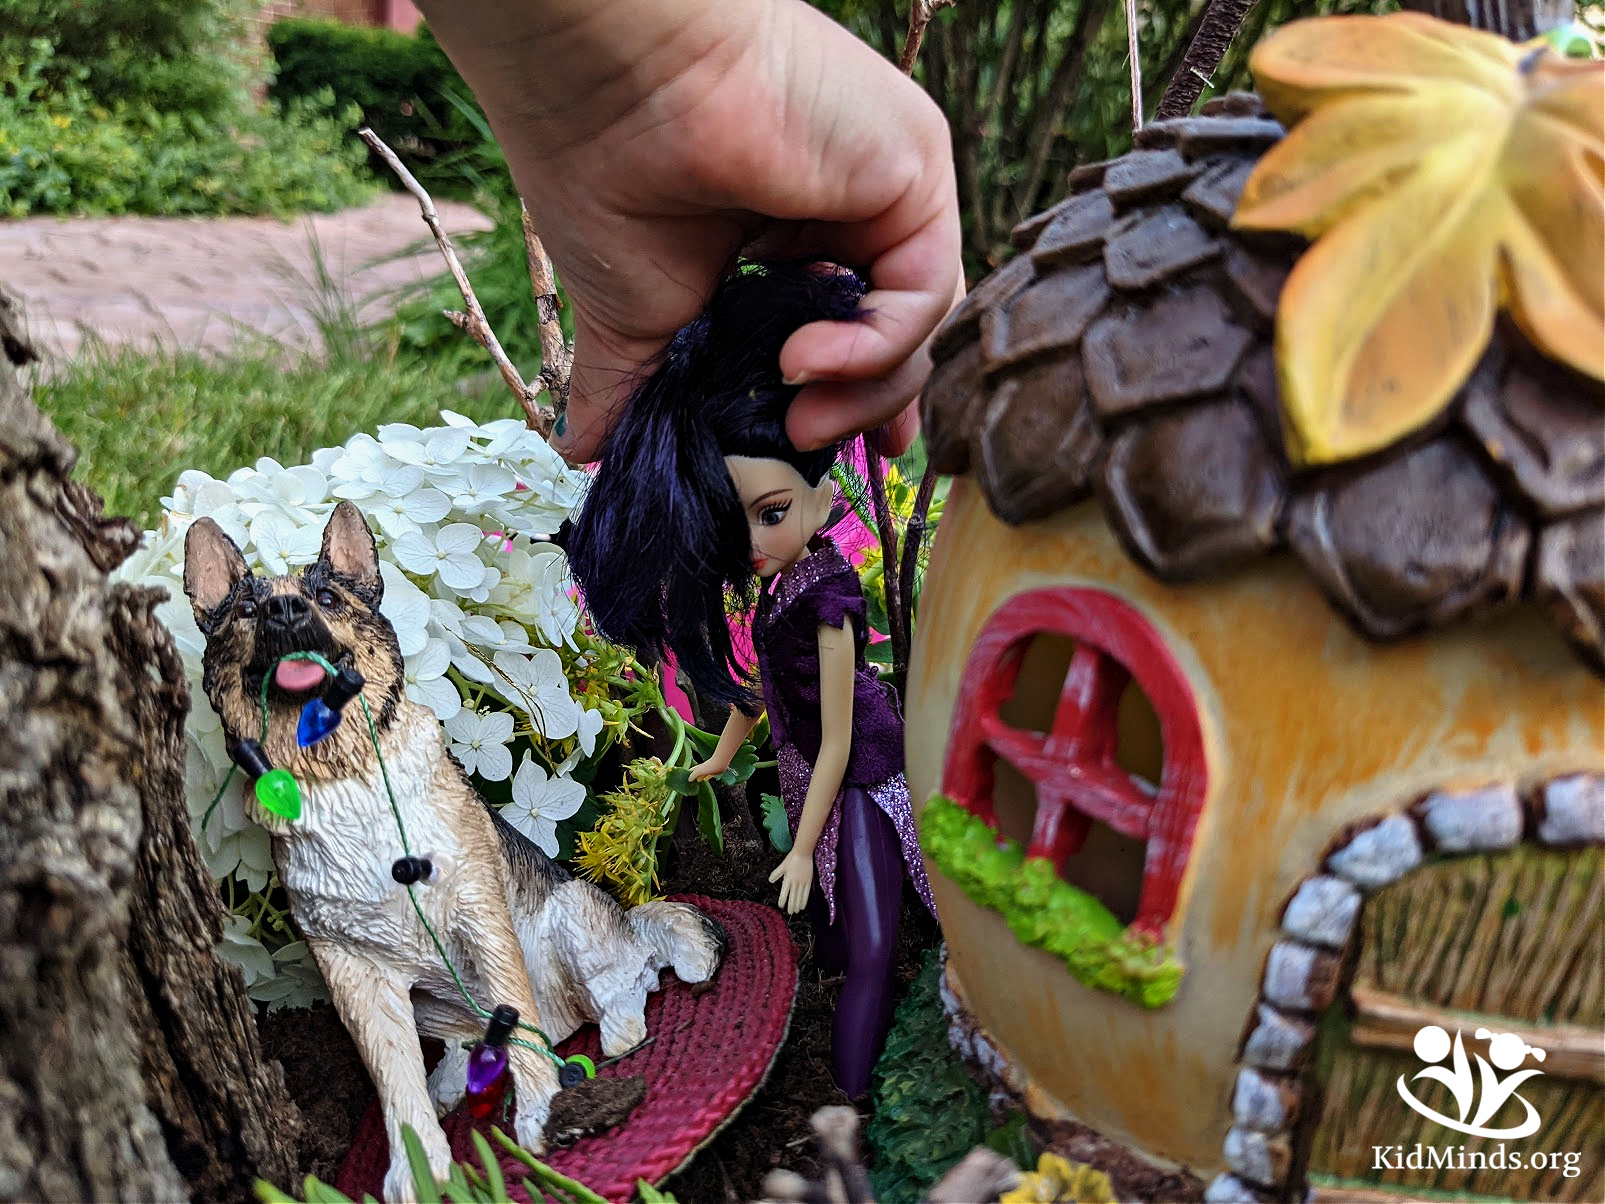 Putting together a fairy garden is not just fun! It incorporates science, technology, engineering, and math (STEM) learning. #kidsactivities #fairygarden #STEMlearning #playandlearn